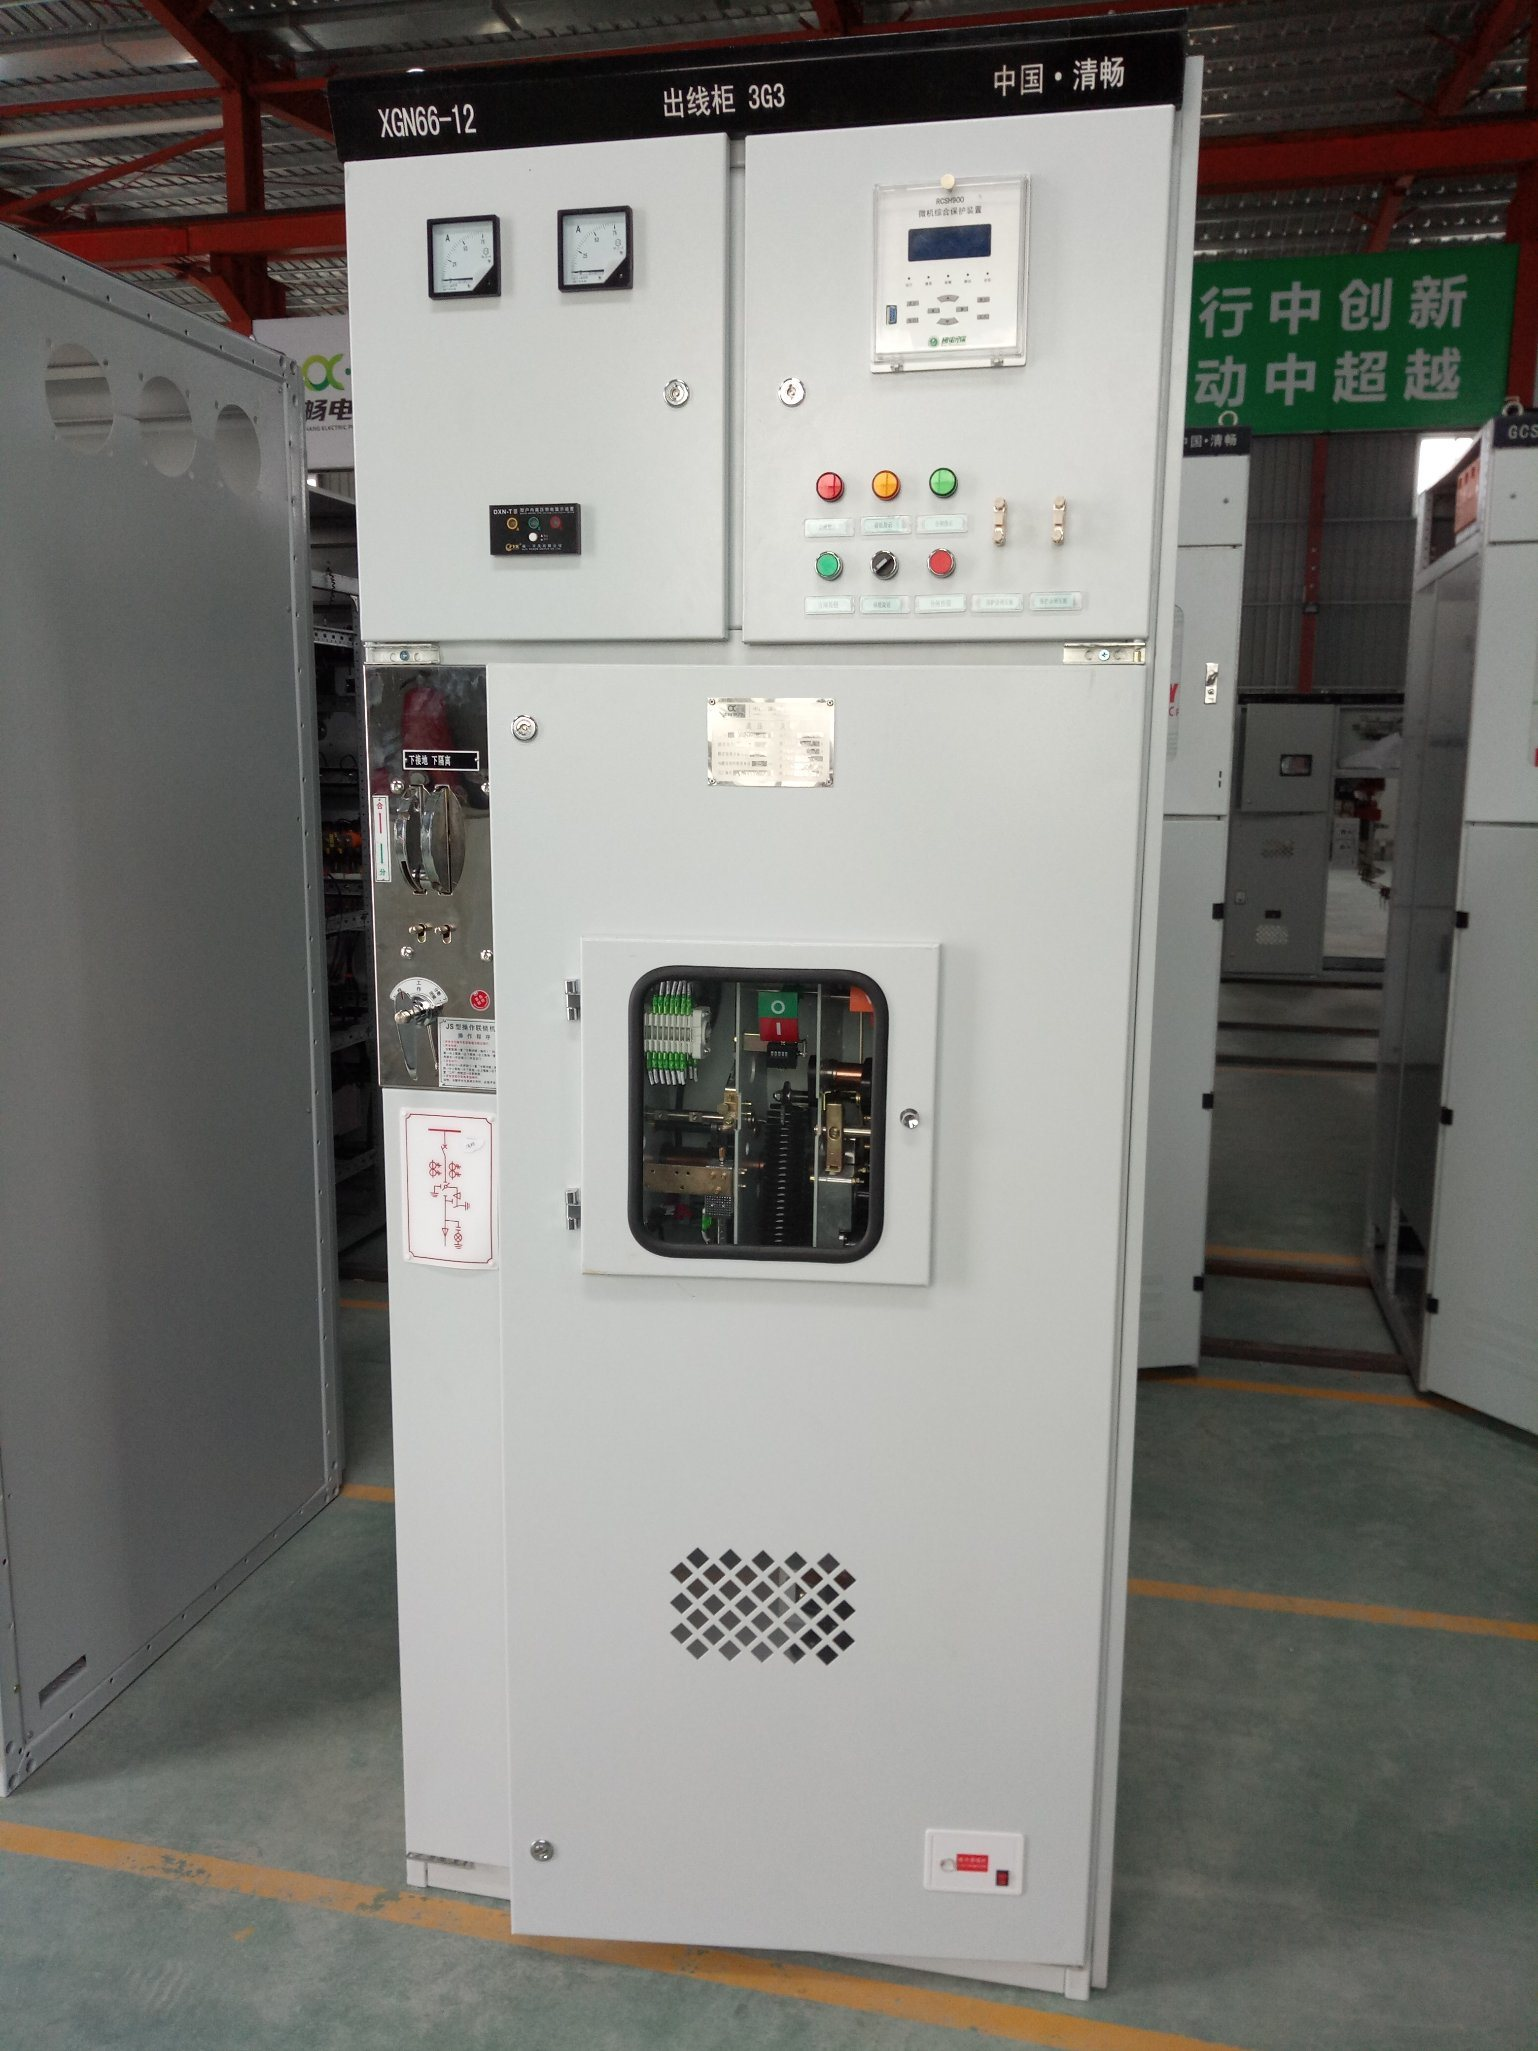 Xgn66-12 Indoor Box-Type Fixed Metal Sealed Switchgear Sf6 Gas Insulated Switchgear